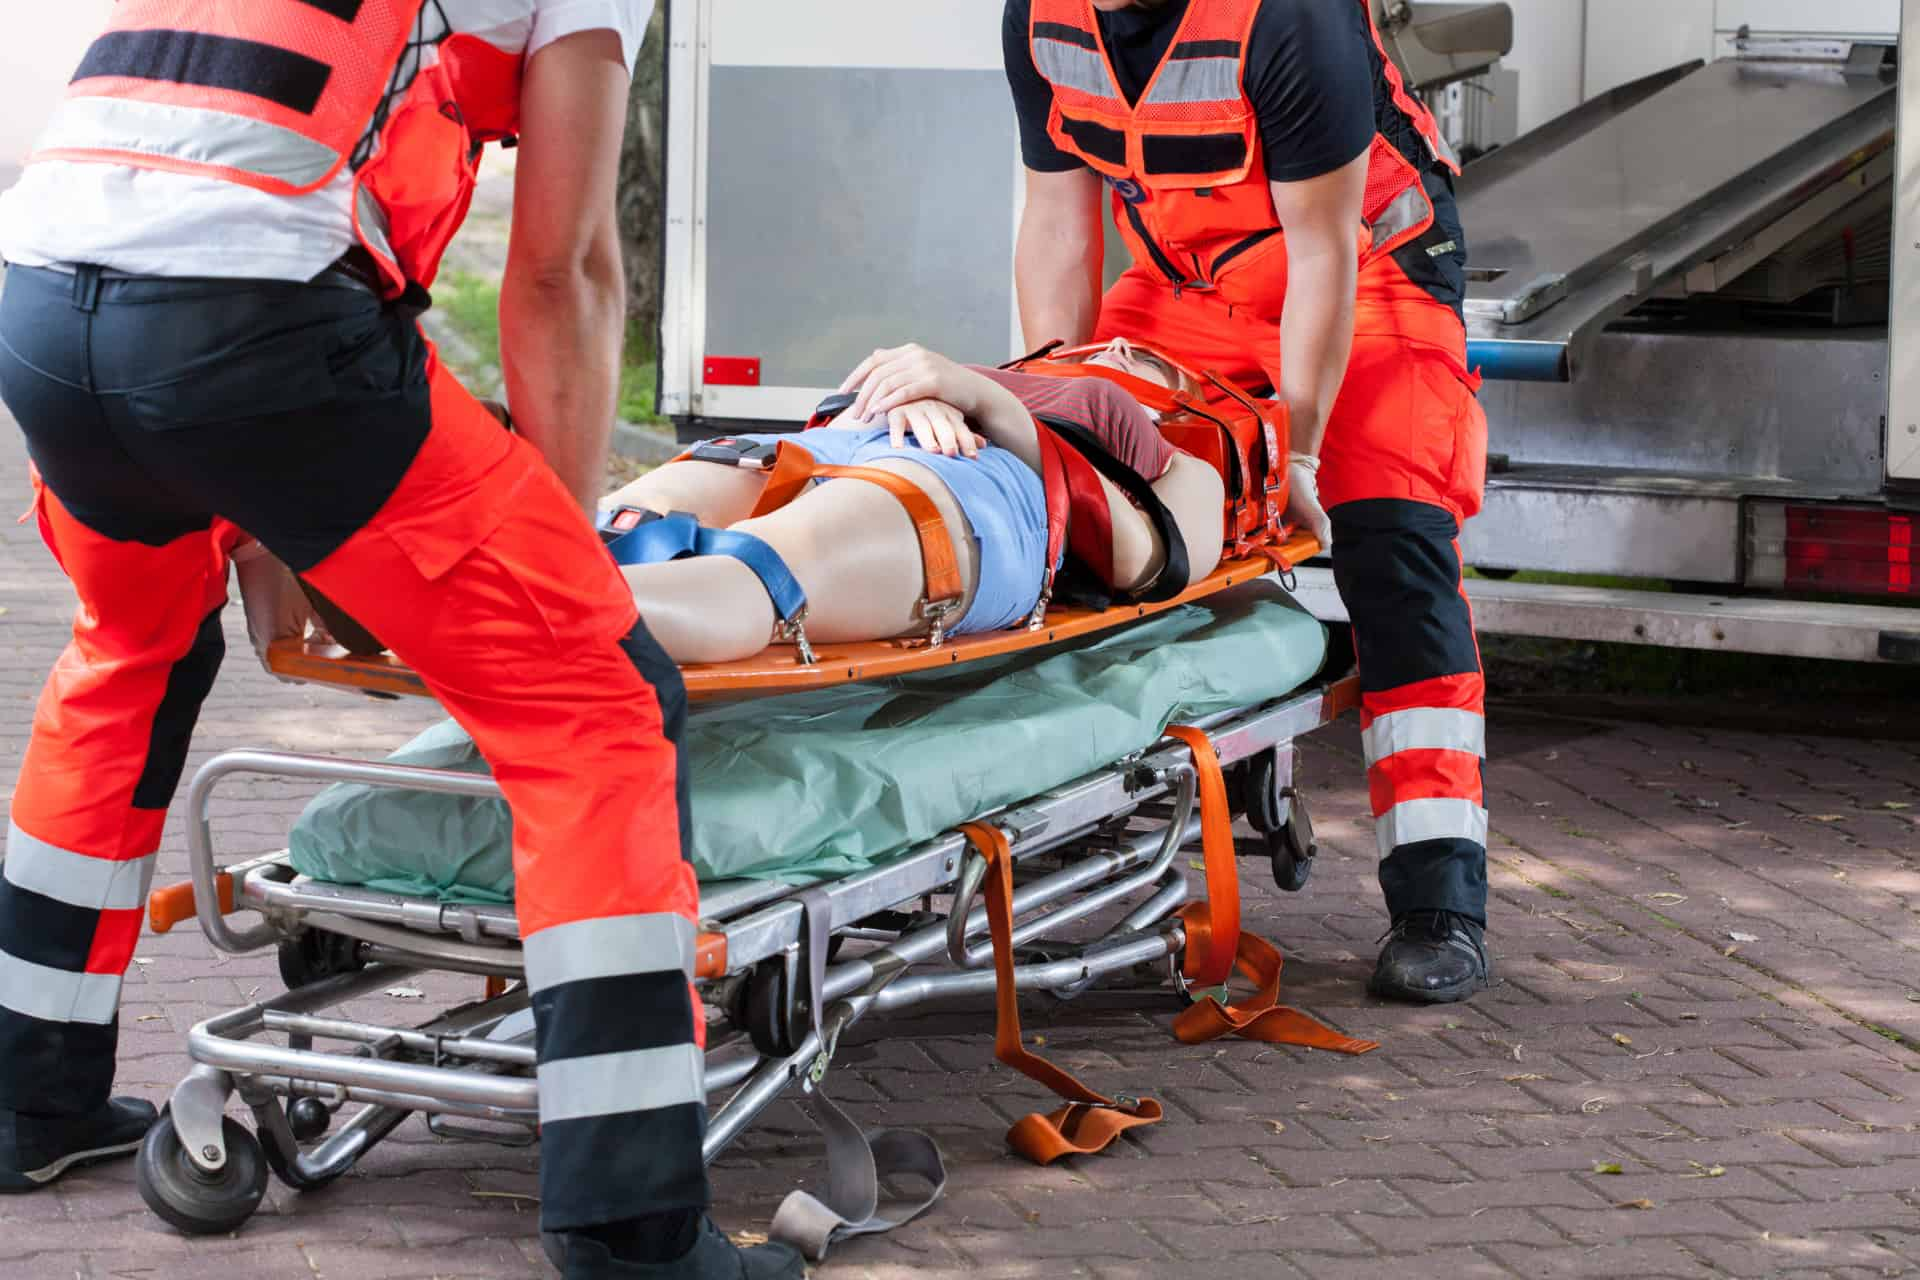 accident on the stretcher